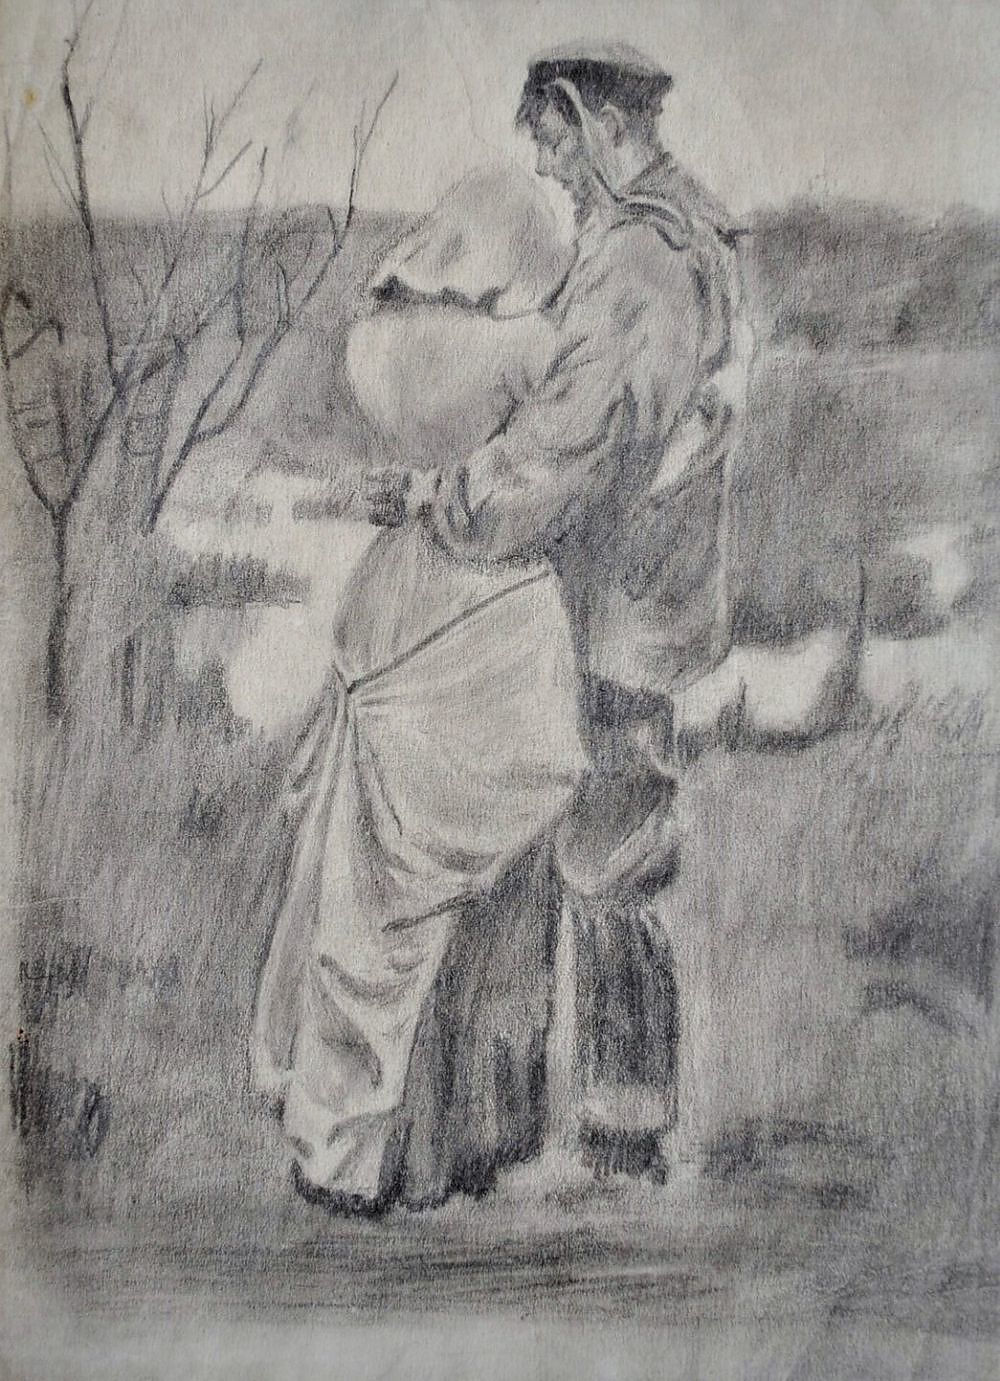 'LARSON, S A Sailors Goodbye. Possibly Inscribed S Larson 1915 (indistinct) Pencil'